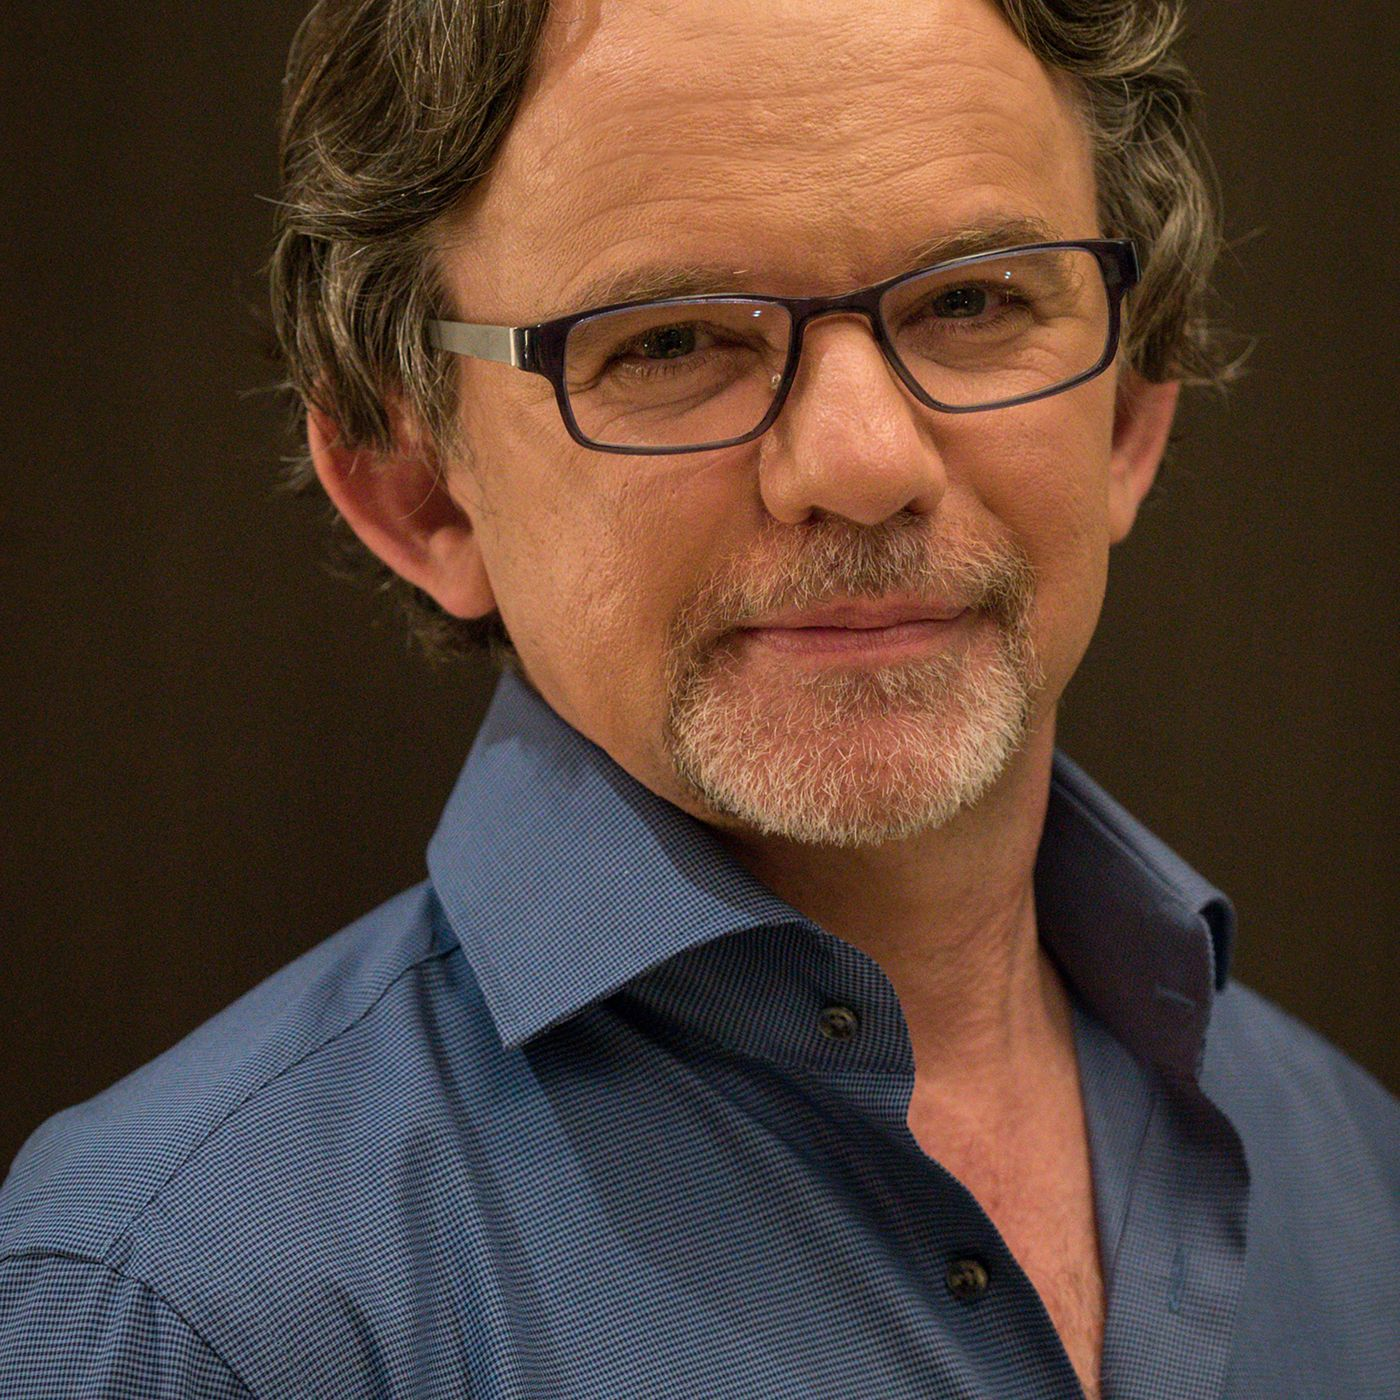 284. Interview: Frank Spotnitz (Producer of The X-Files)